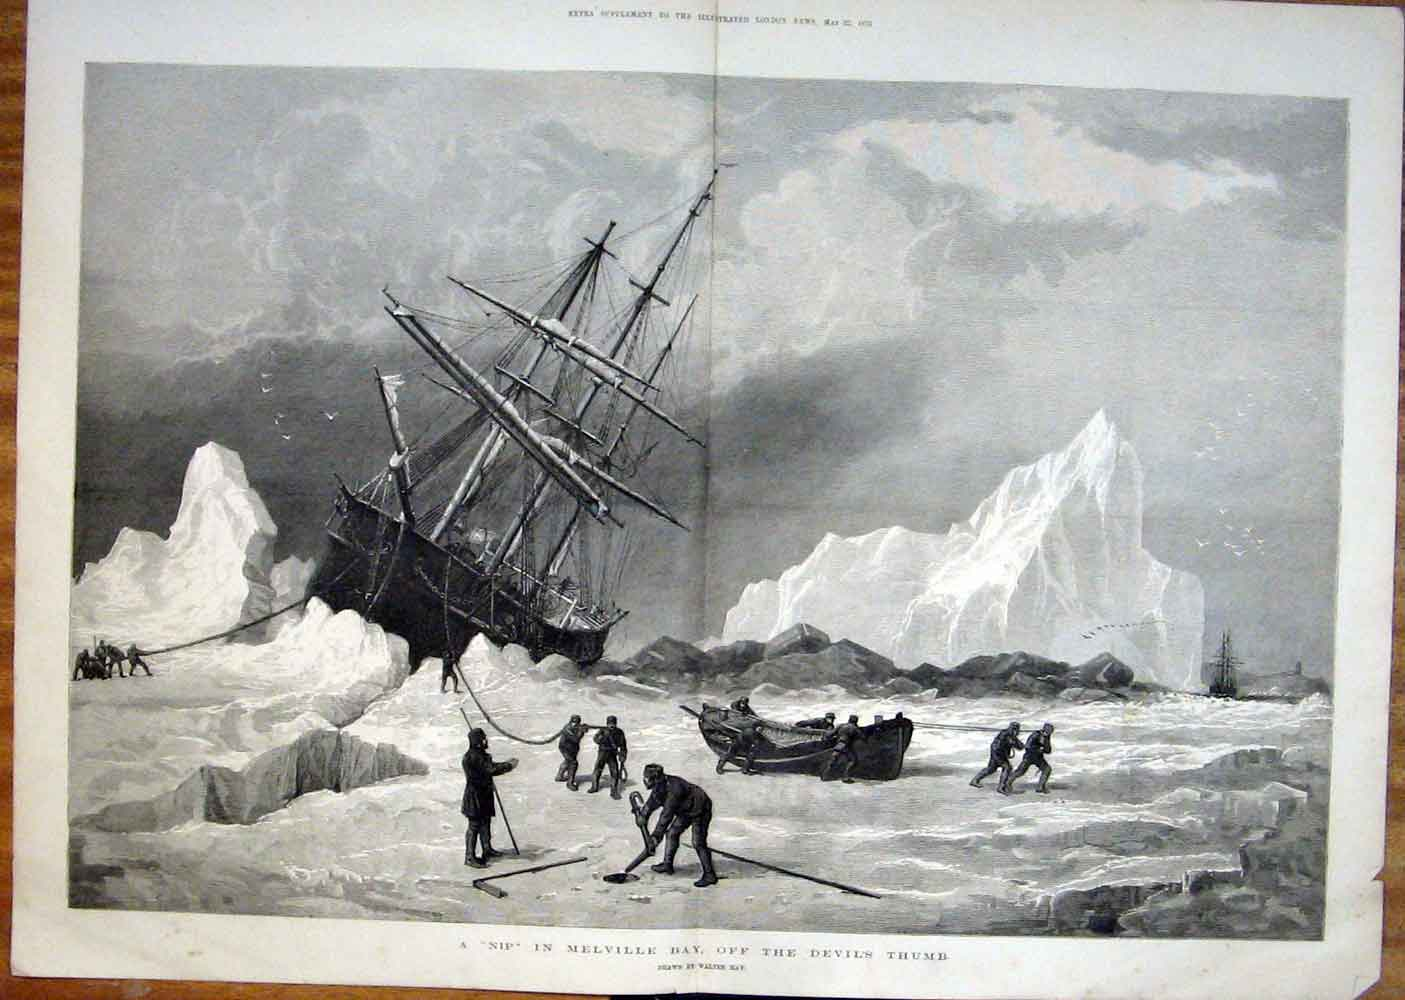 Print Walter May Melville Bay Devils Thumb 1875 52Taaa0 Old Original